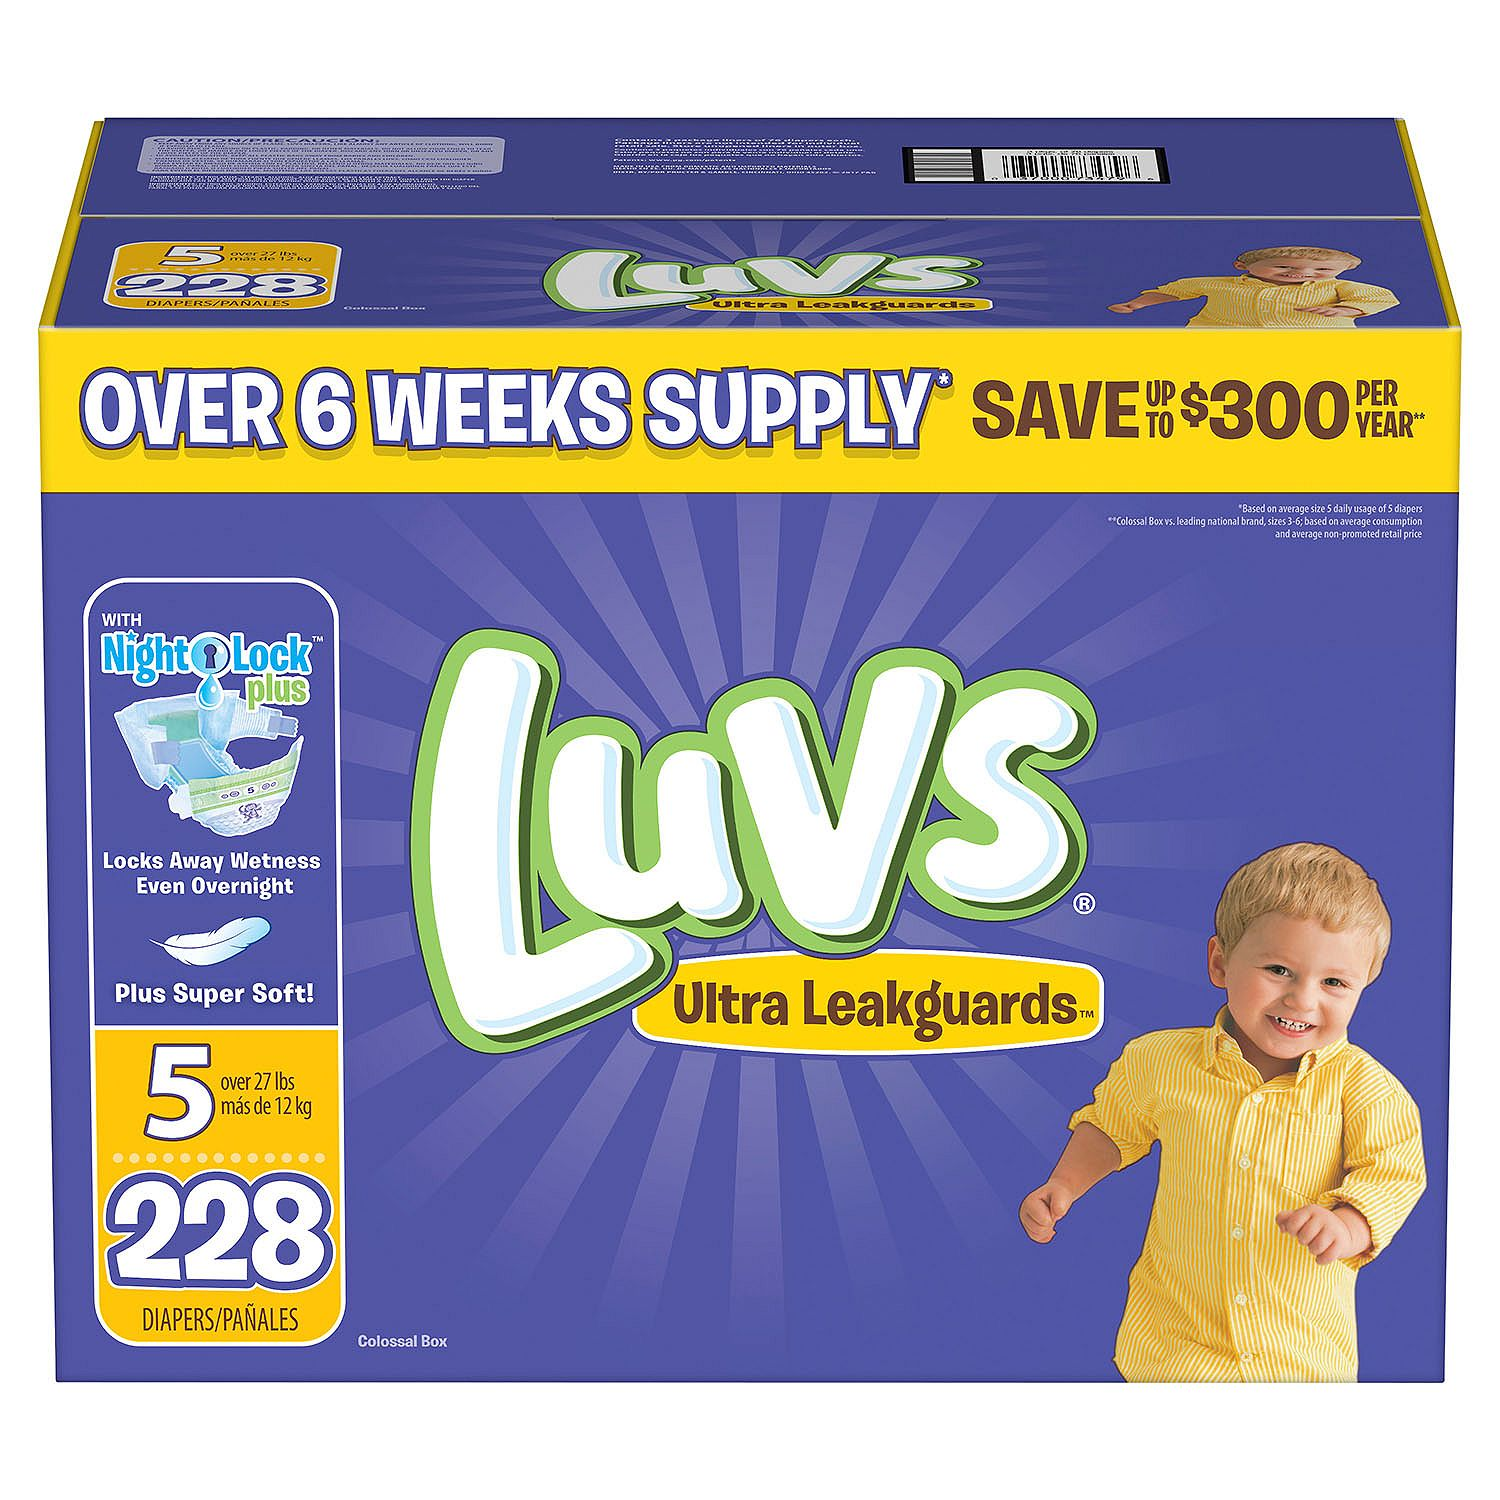 Luvs Ultra Leakguards Diapers Size Size 5 - 228 ct. - Bulk Qty, Free Shipping - Comfortable, Soft, No leaking & Good nite Diapers